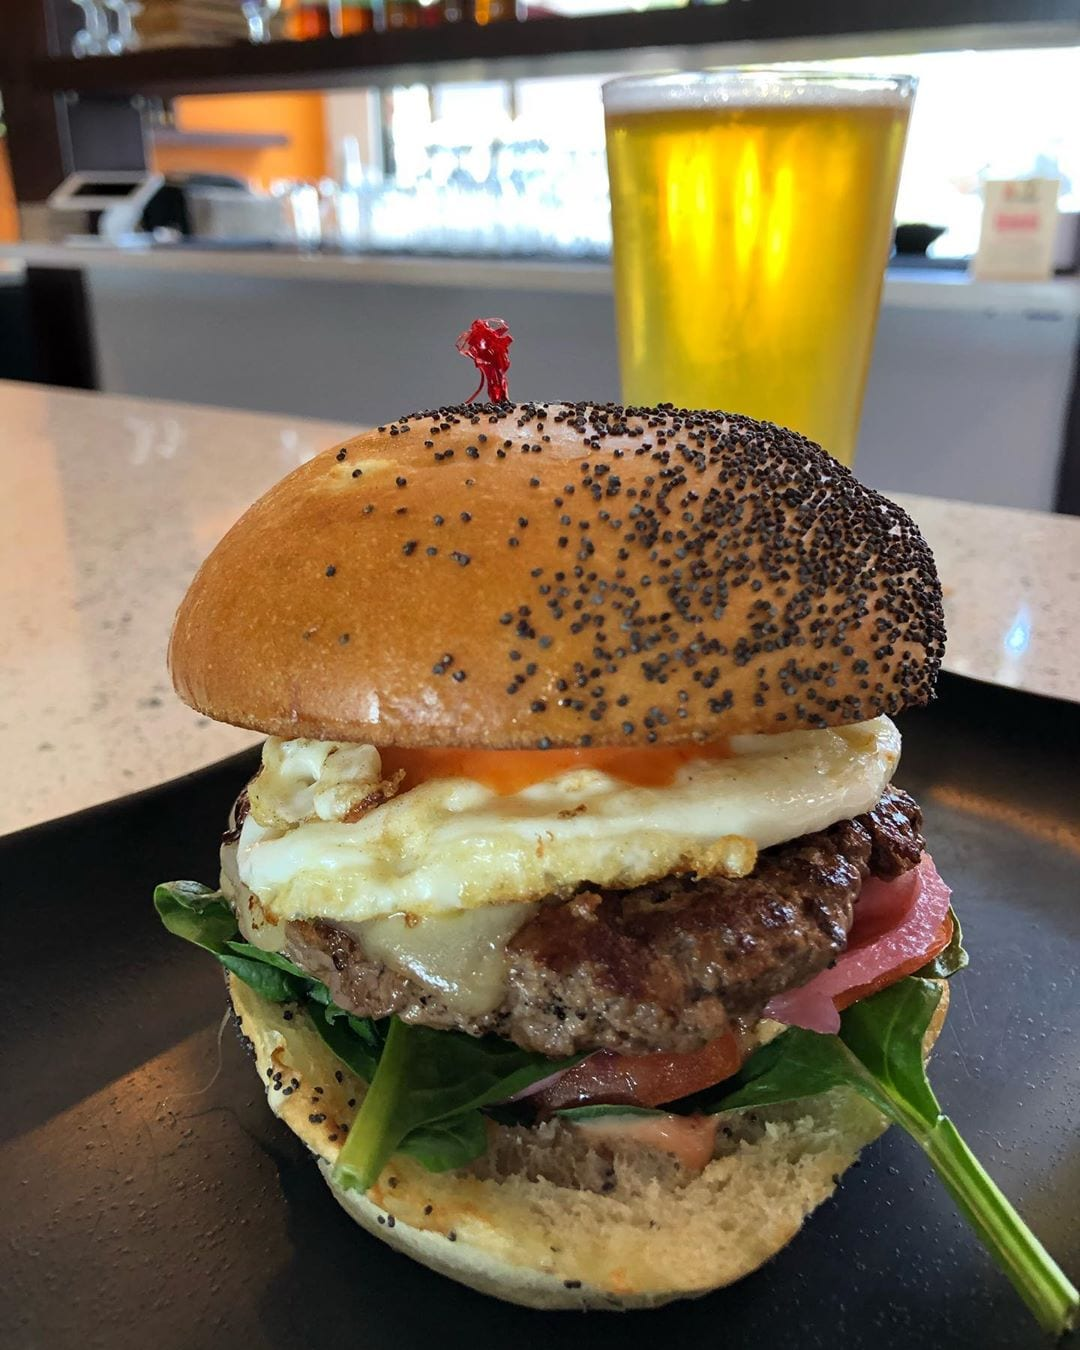 TGIF! Don't a nice juicy bison burger topped with fried egg, and cold beer sound good right now?! Try it @fireandbrew #tgif #fireandbrew #hotelzephyrsf #hotelzephyr #tgifridays #hh #happyhour